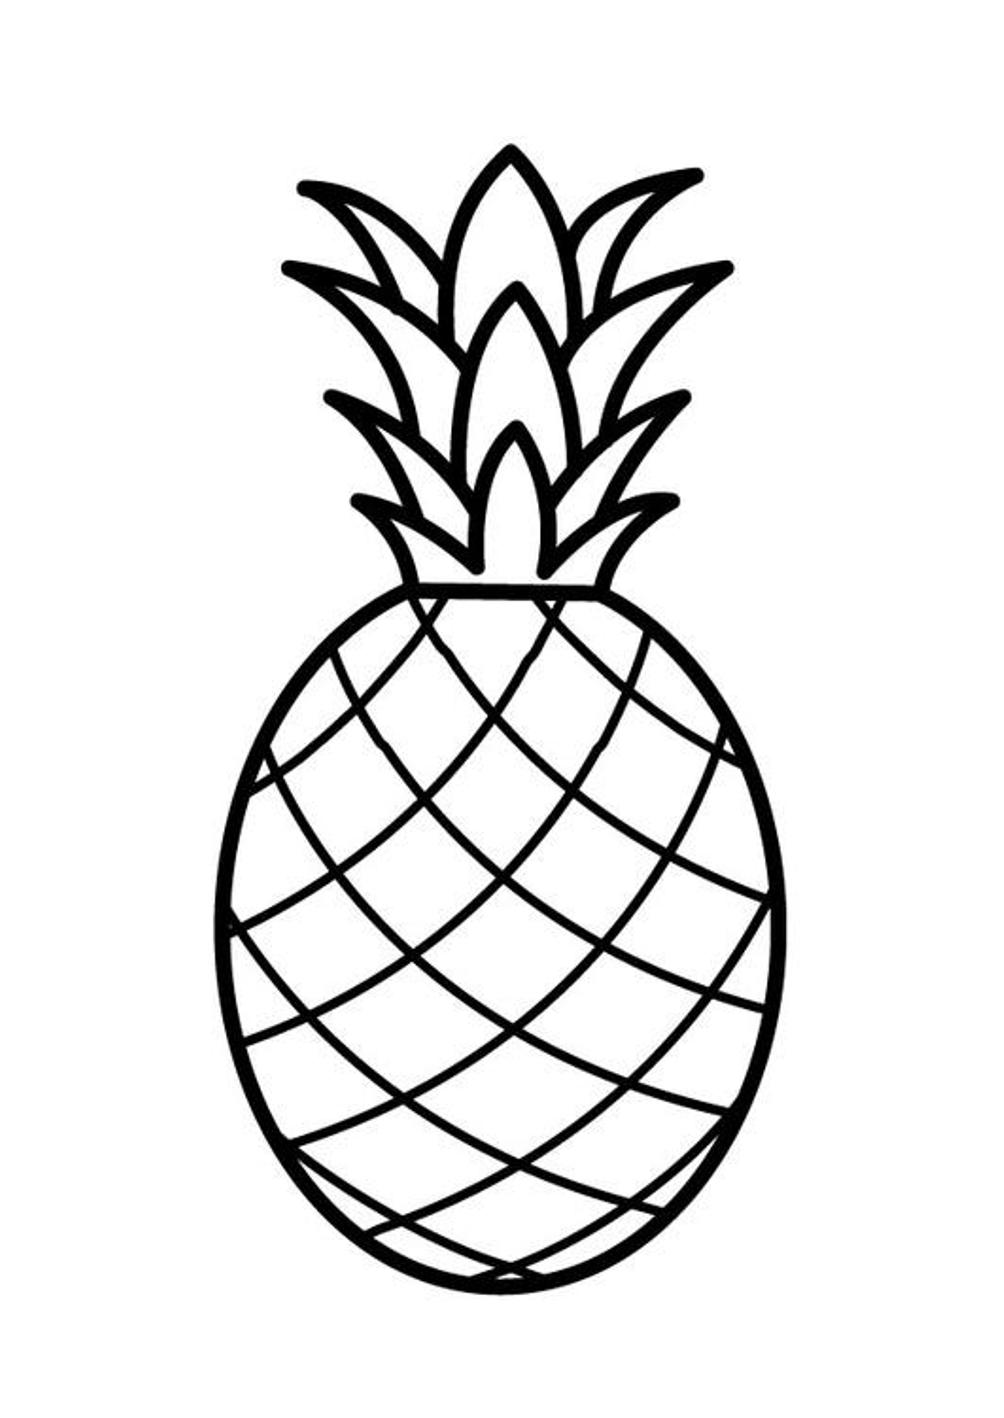 colouring images of fruits free printable fruit coloring pages for kids fruits colouring images of 1 1